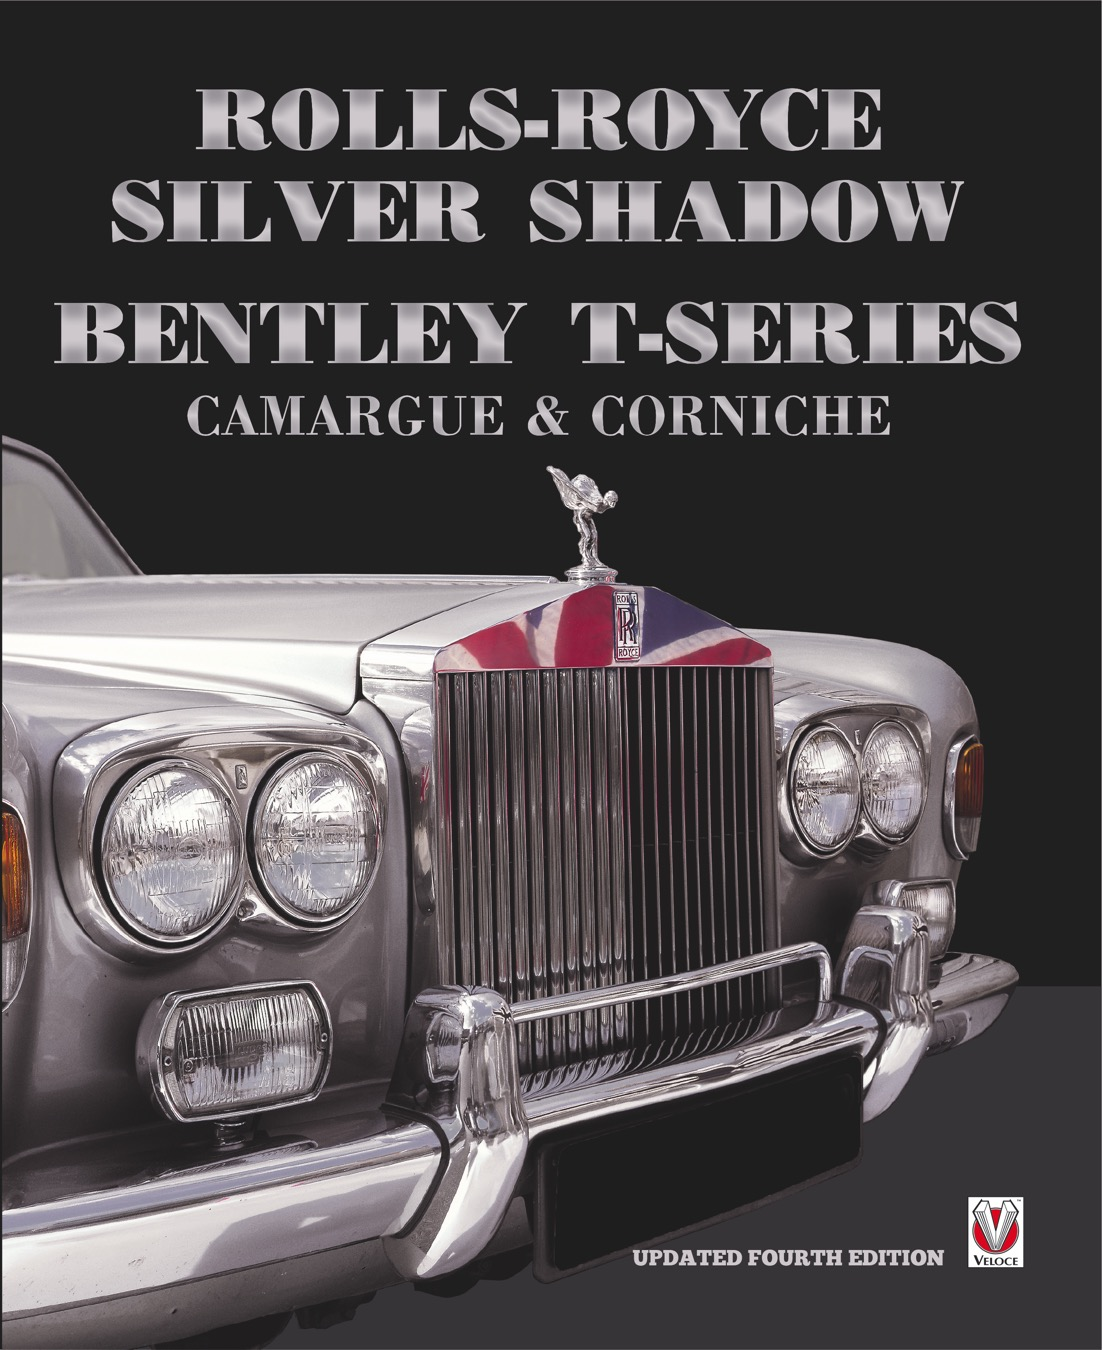 Book Release - Rolls-Royce Silver Shadow & Bentley T-Series